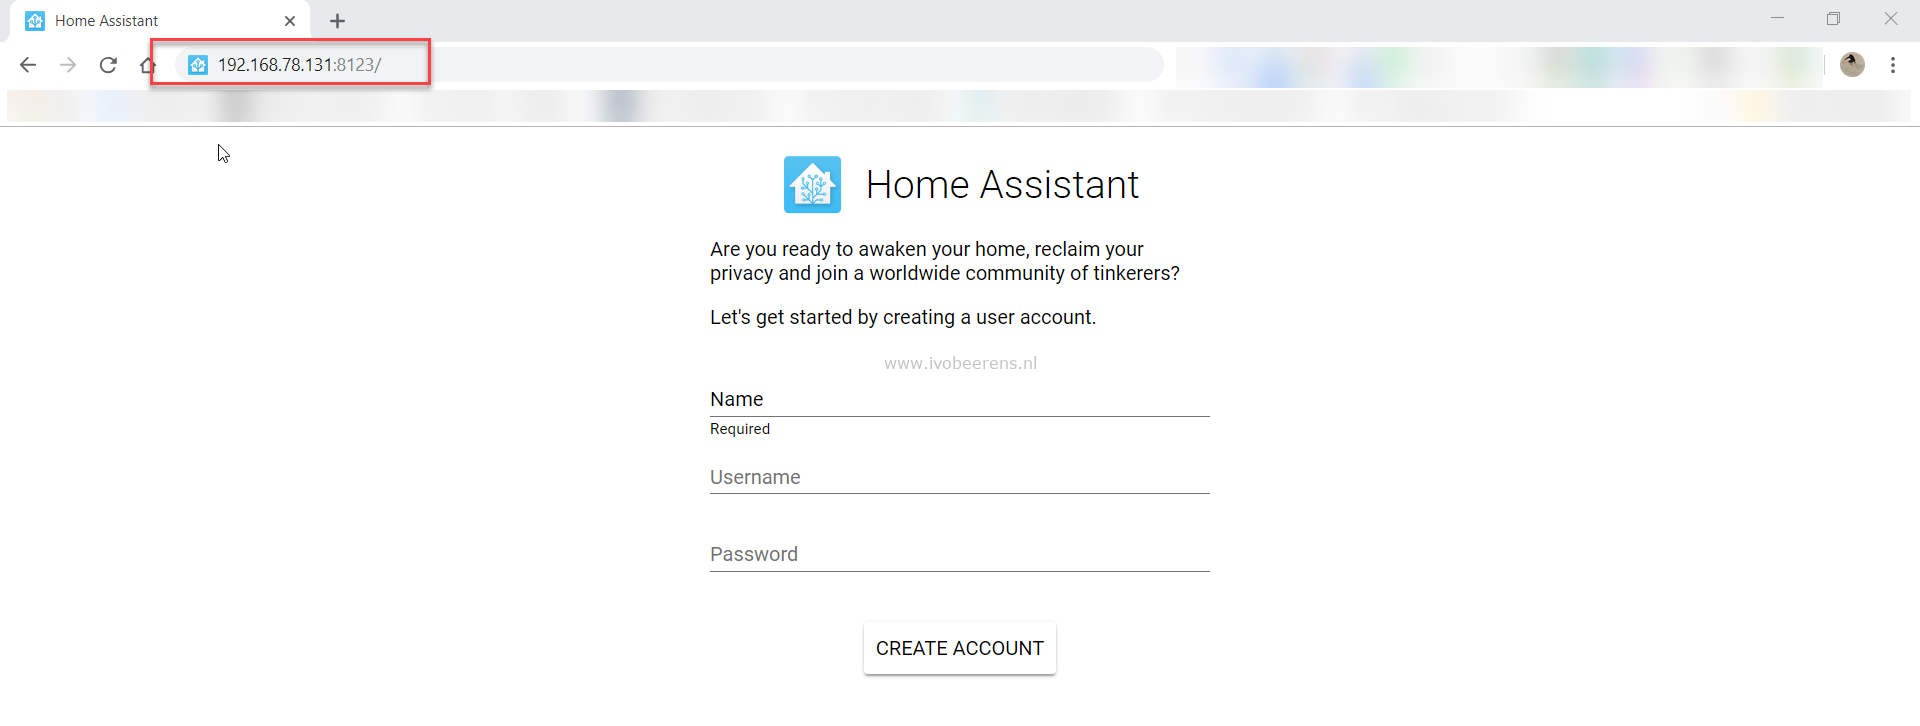 Install Home Assistant Hass io as VM in VMware Workstation